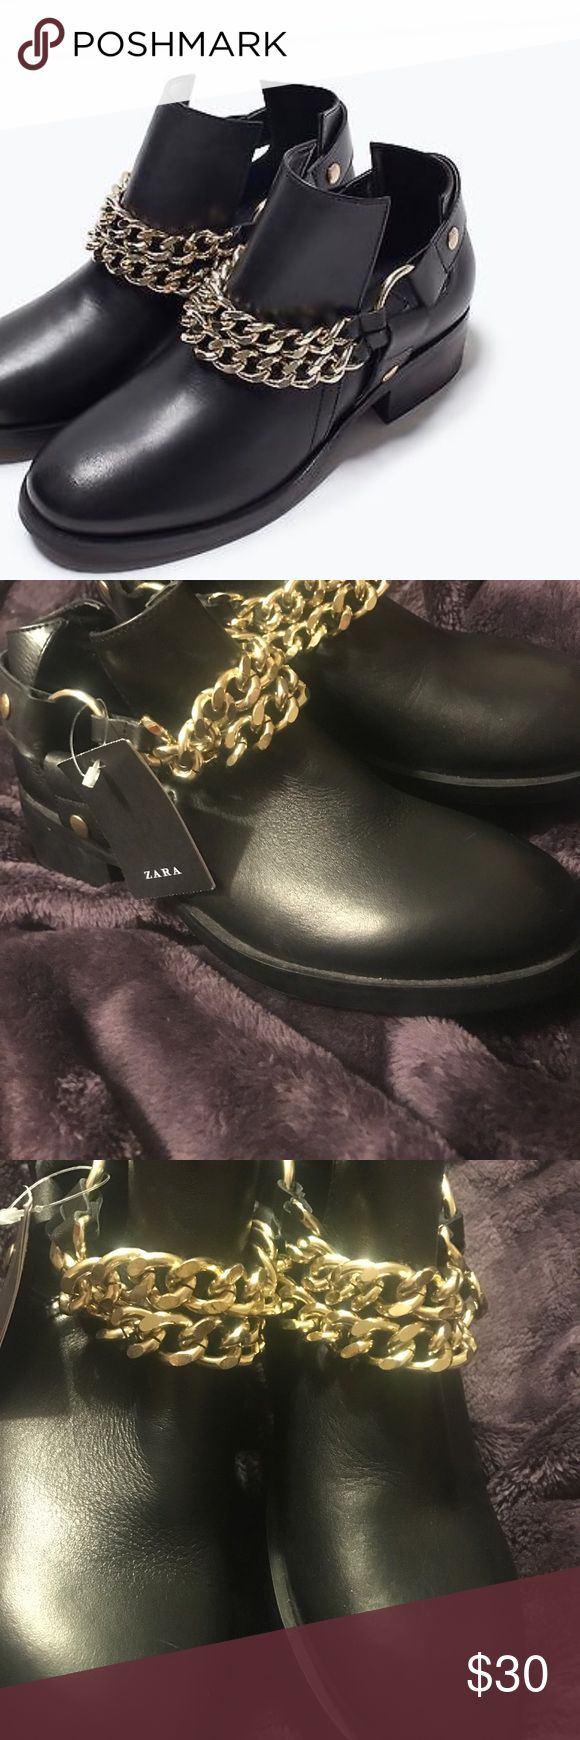 NWT Zara Black Ankle Booties with Chain Never worn, NWT! I bought these at Zara online and never wore them, they were too big on me! They've been sitting in my closet, I no longer have the box but they are in Great shape. The left shoe has a small scuff on the back but can be covered with the back strap so it's unnoticeable! Very Rock & Roll perfect for the girl with a rockstar attitude!! Zara Shoes Ankle Boots & Booties